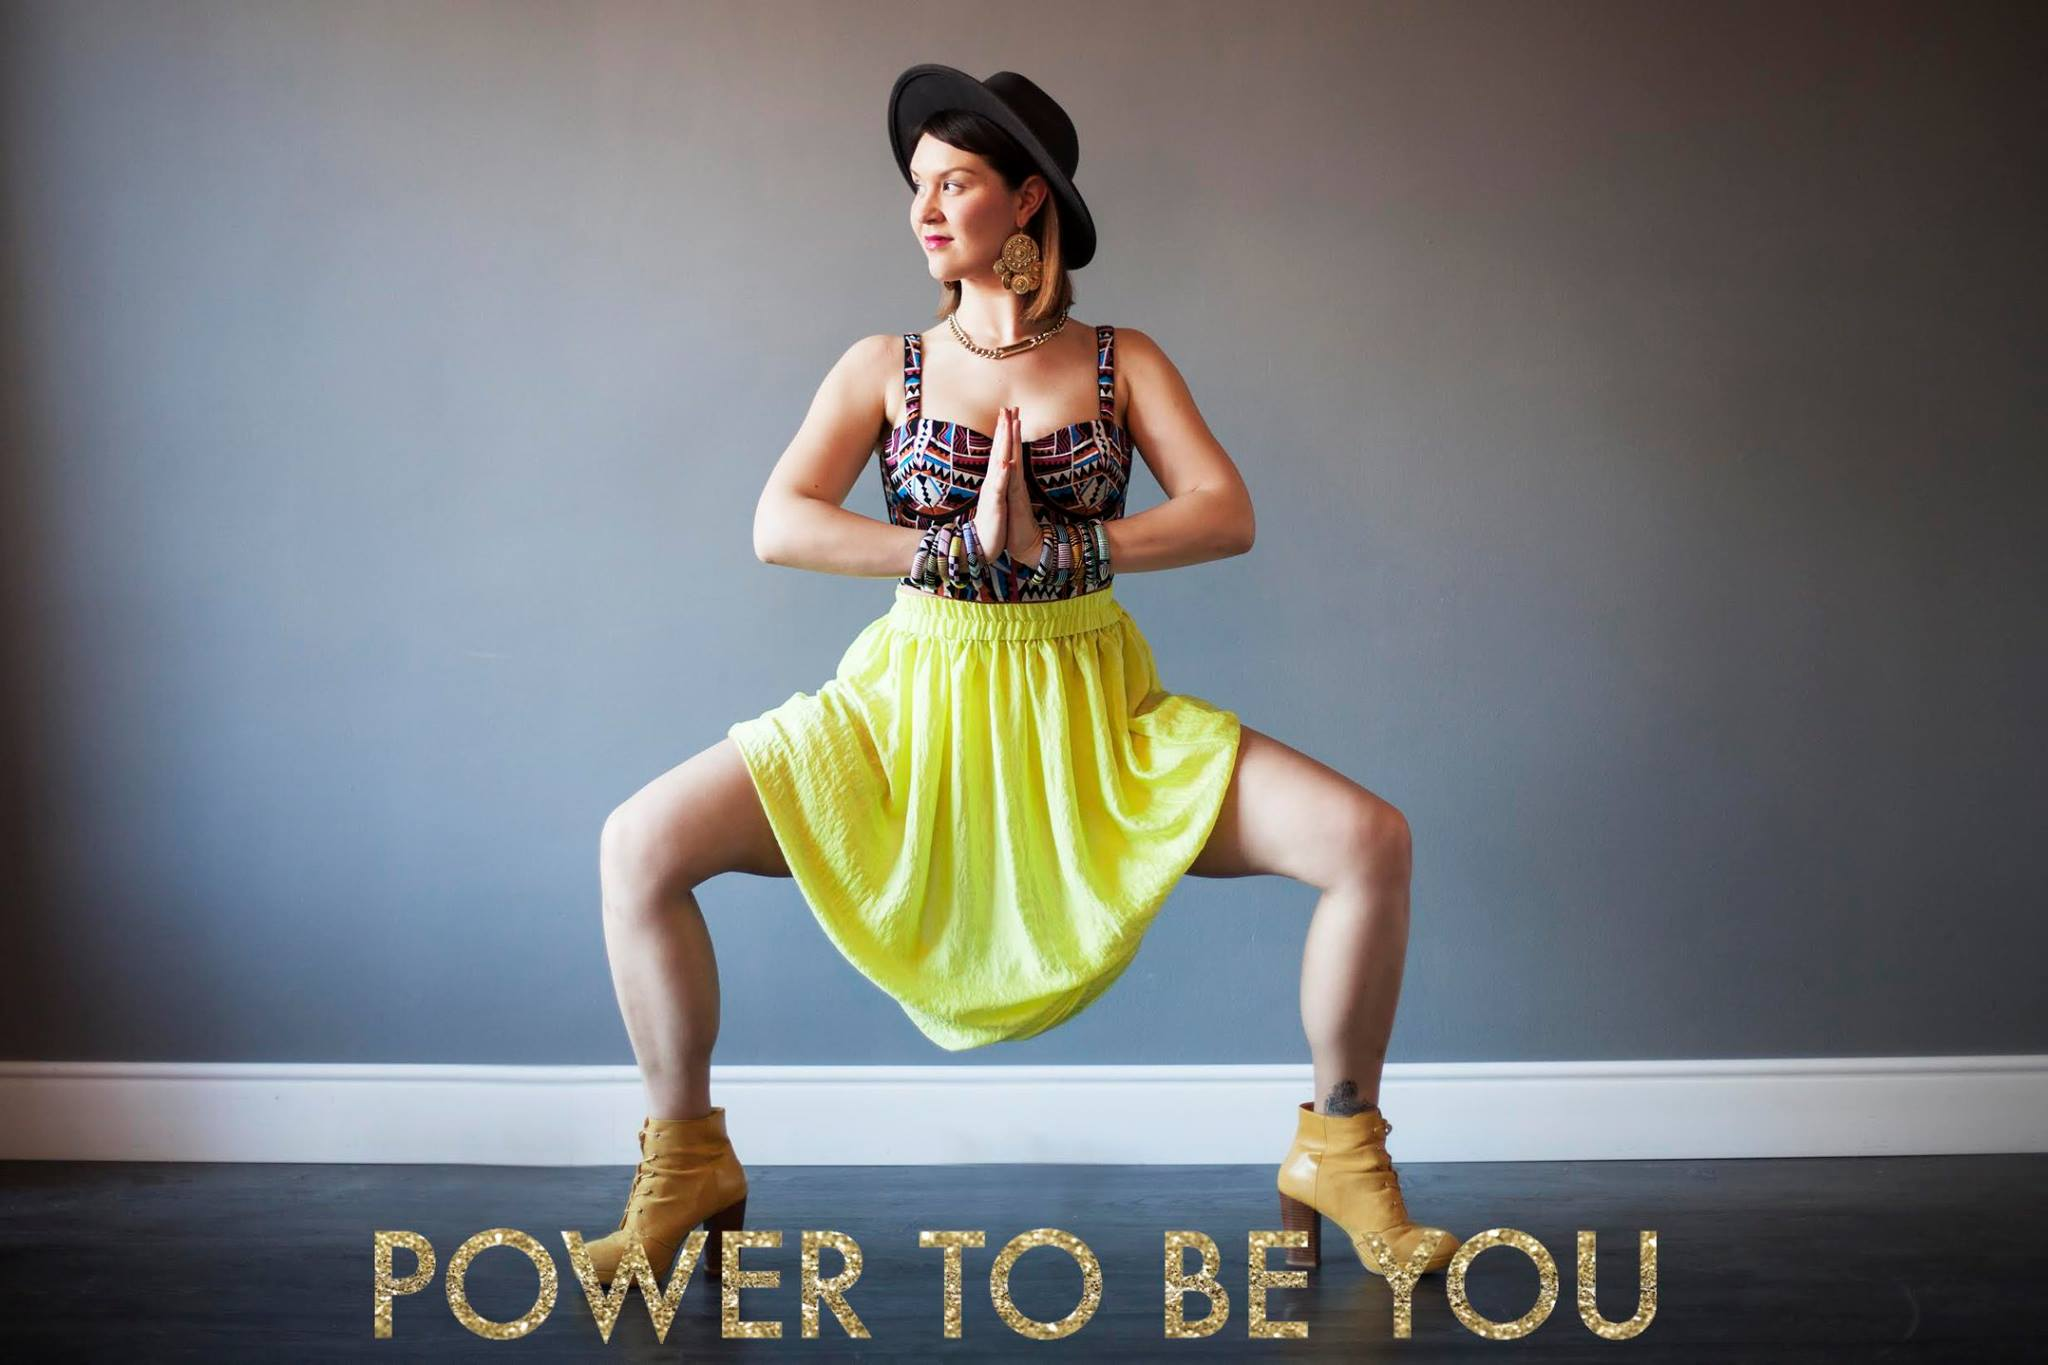 power to be you tapahtuma